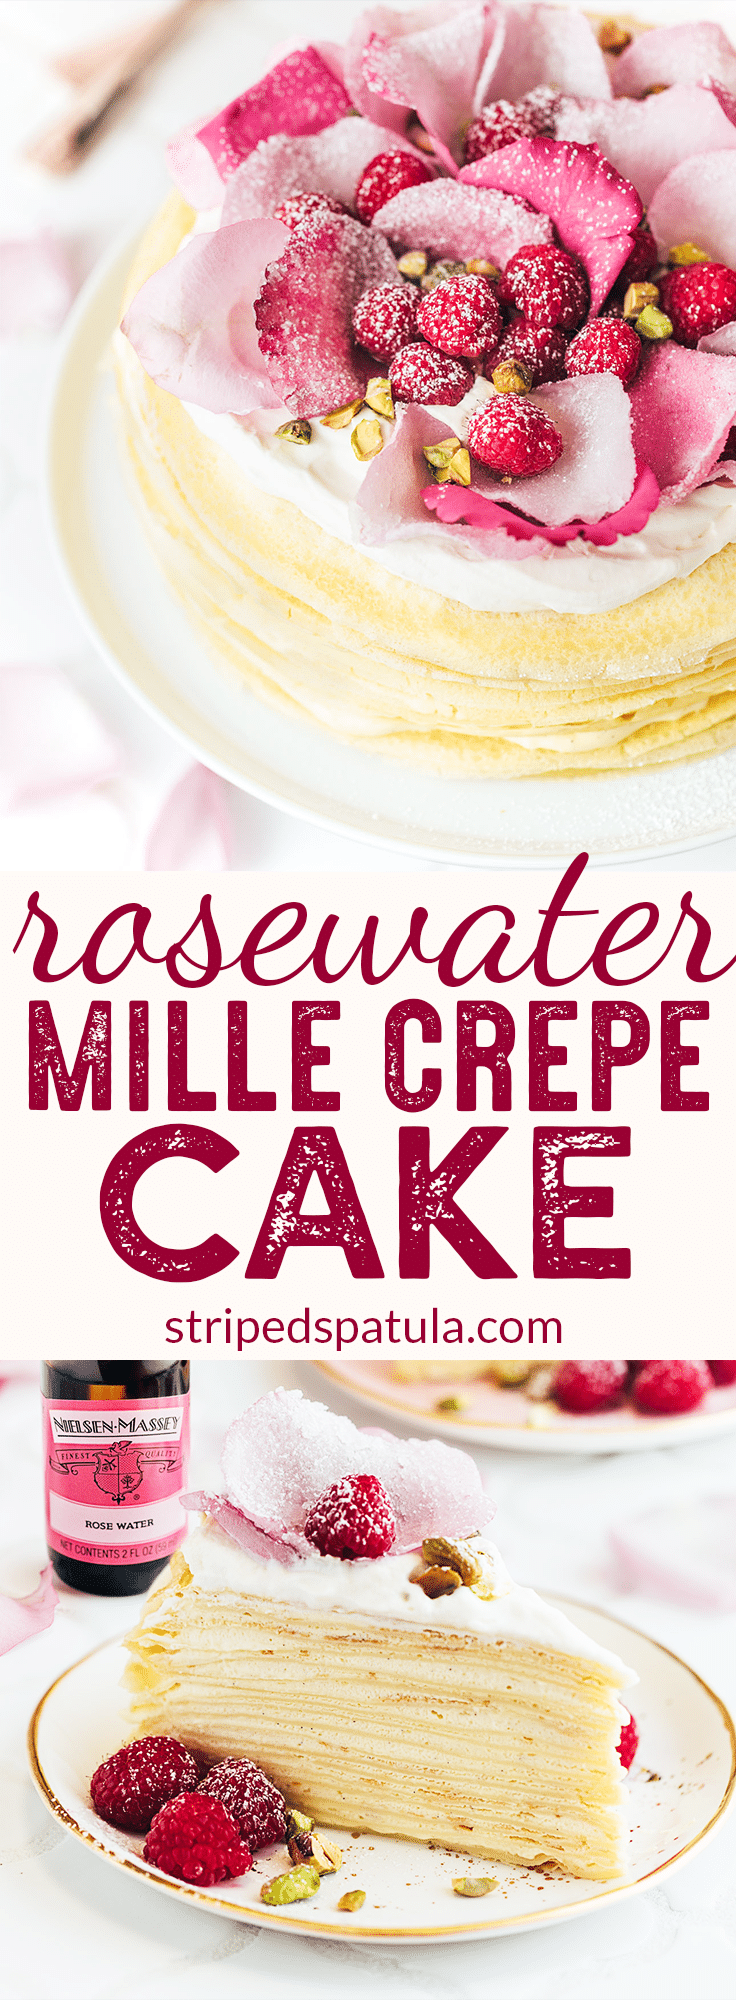 {sponsored} Mille Crepe Cake Recipe with Rose Water Cream | Rosewater Recipes | Nielsen Massey Vanilla | Nielsen Massey Rose Water | Crepe Recipe | Crepes | Dessert Recipes | #stripedspatula #crepe #dessertrecipes